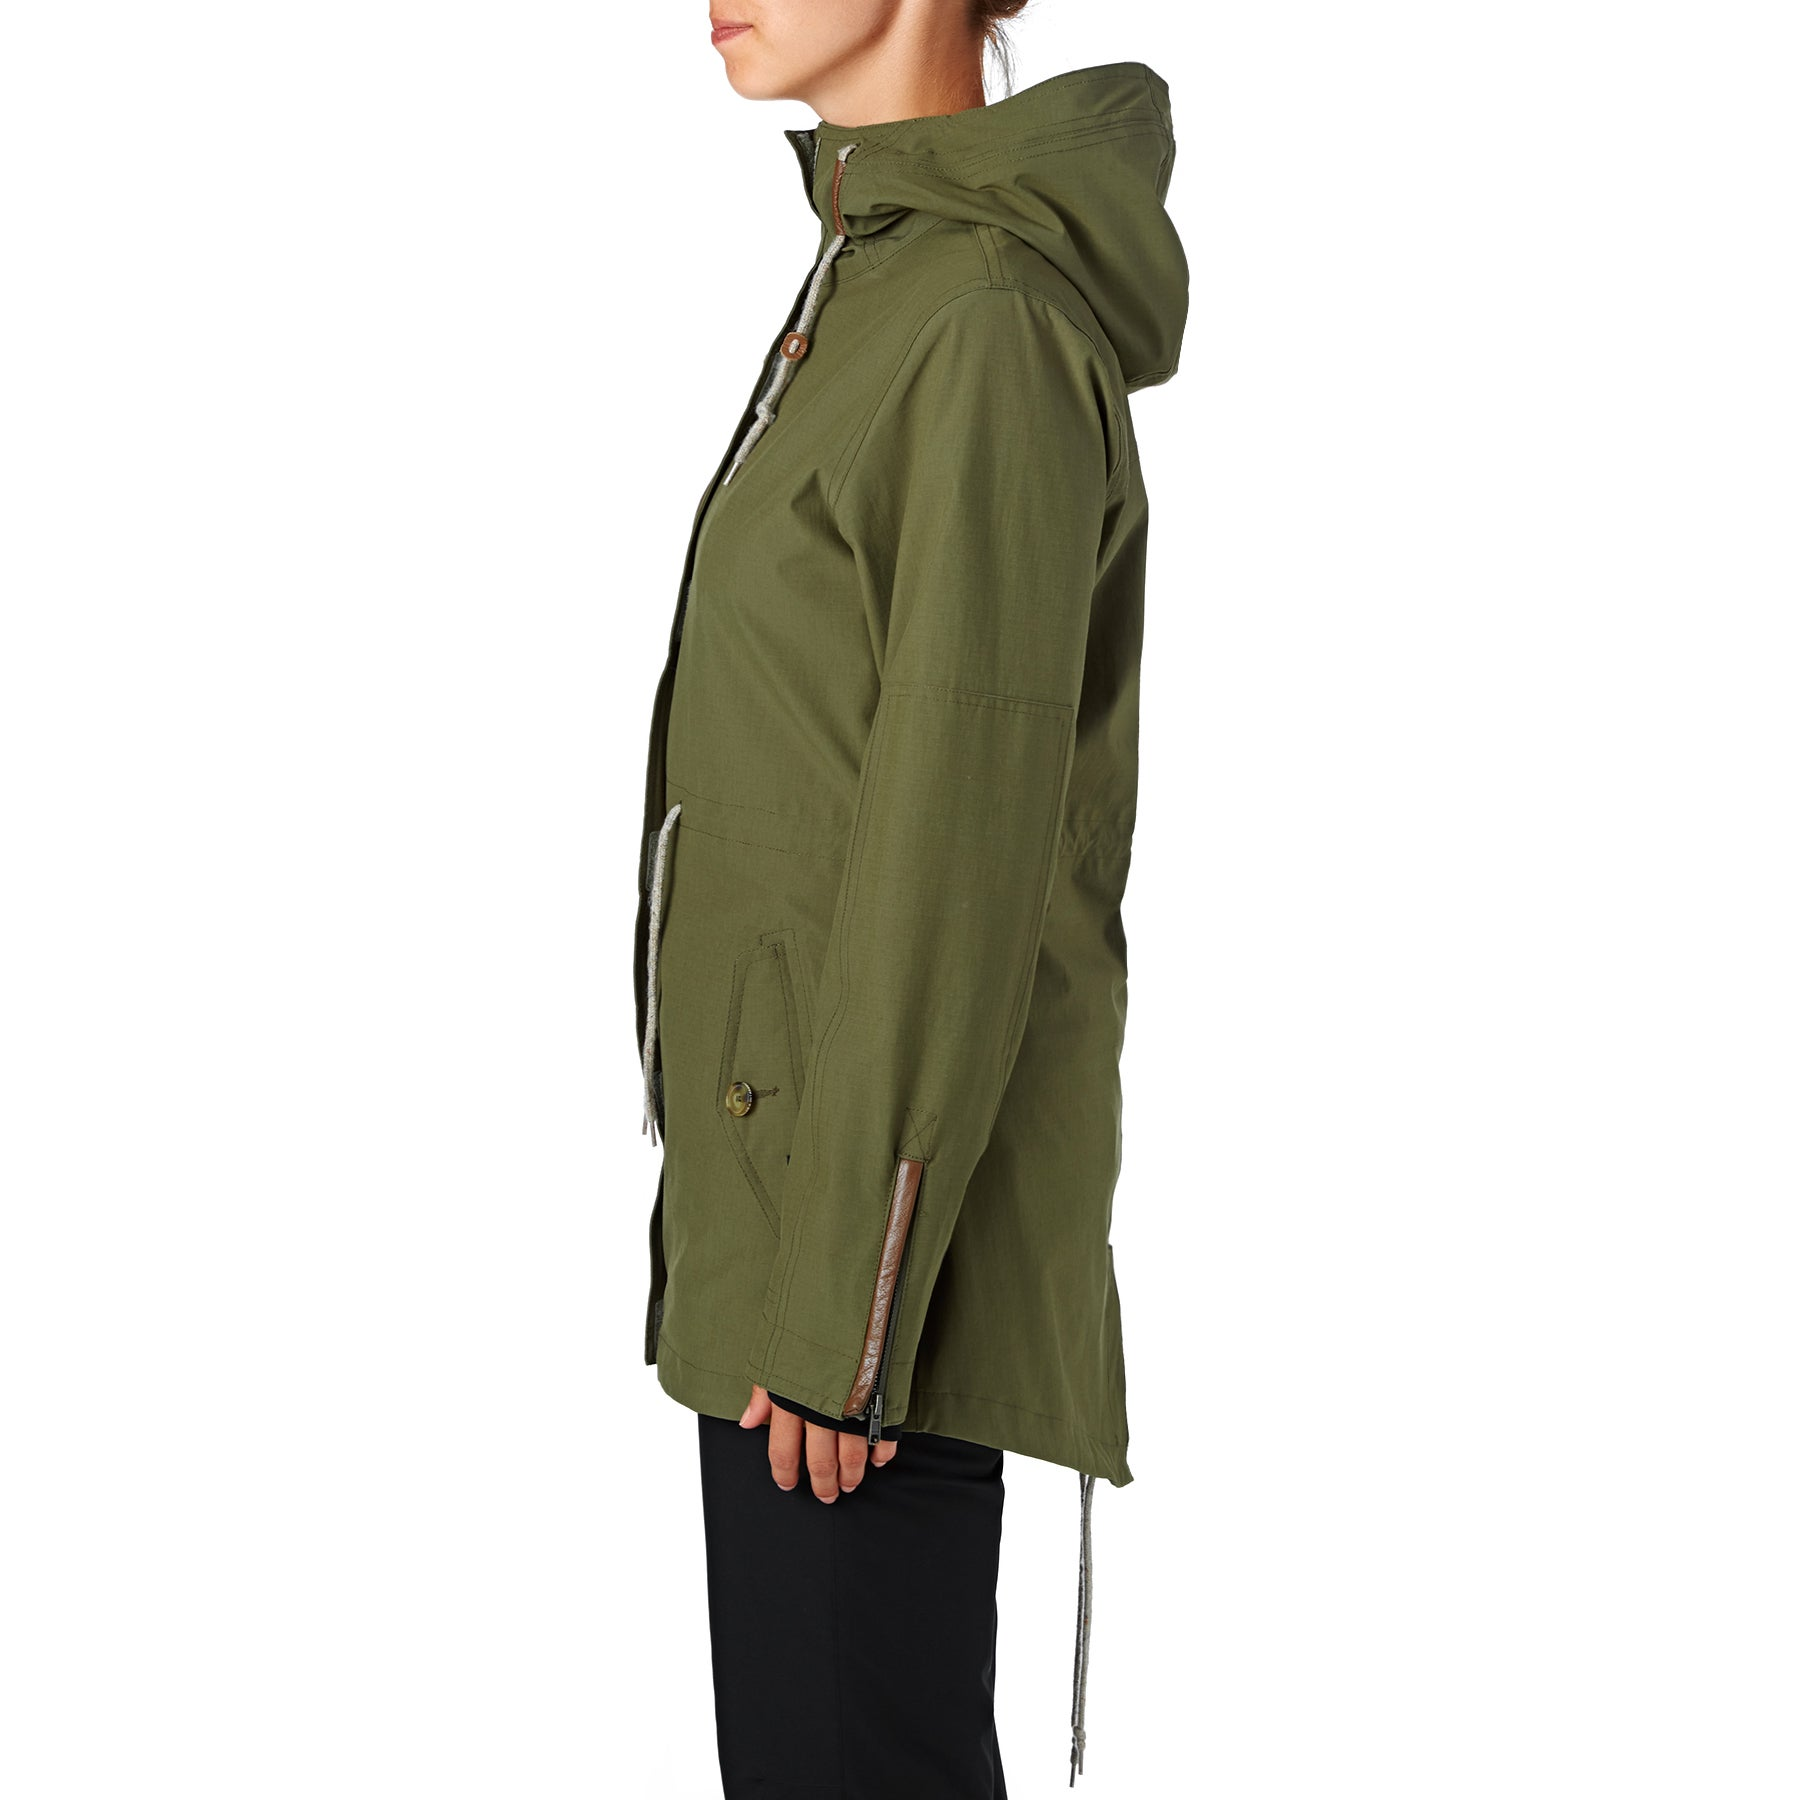 Blouson Fishtail Pour Available From Femme Surfdome Snowboard Holden T8ZCxwnTq